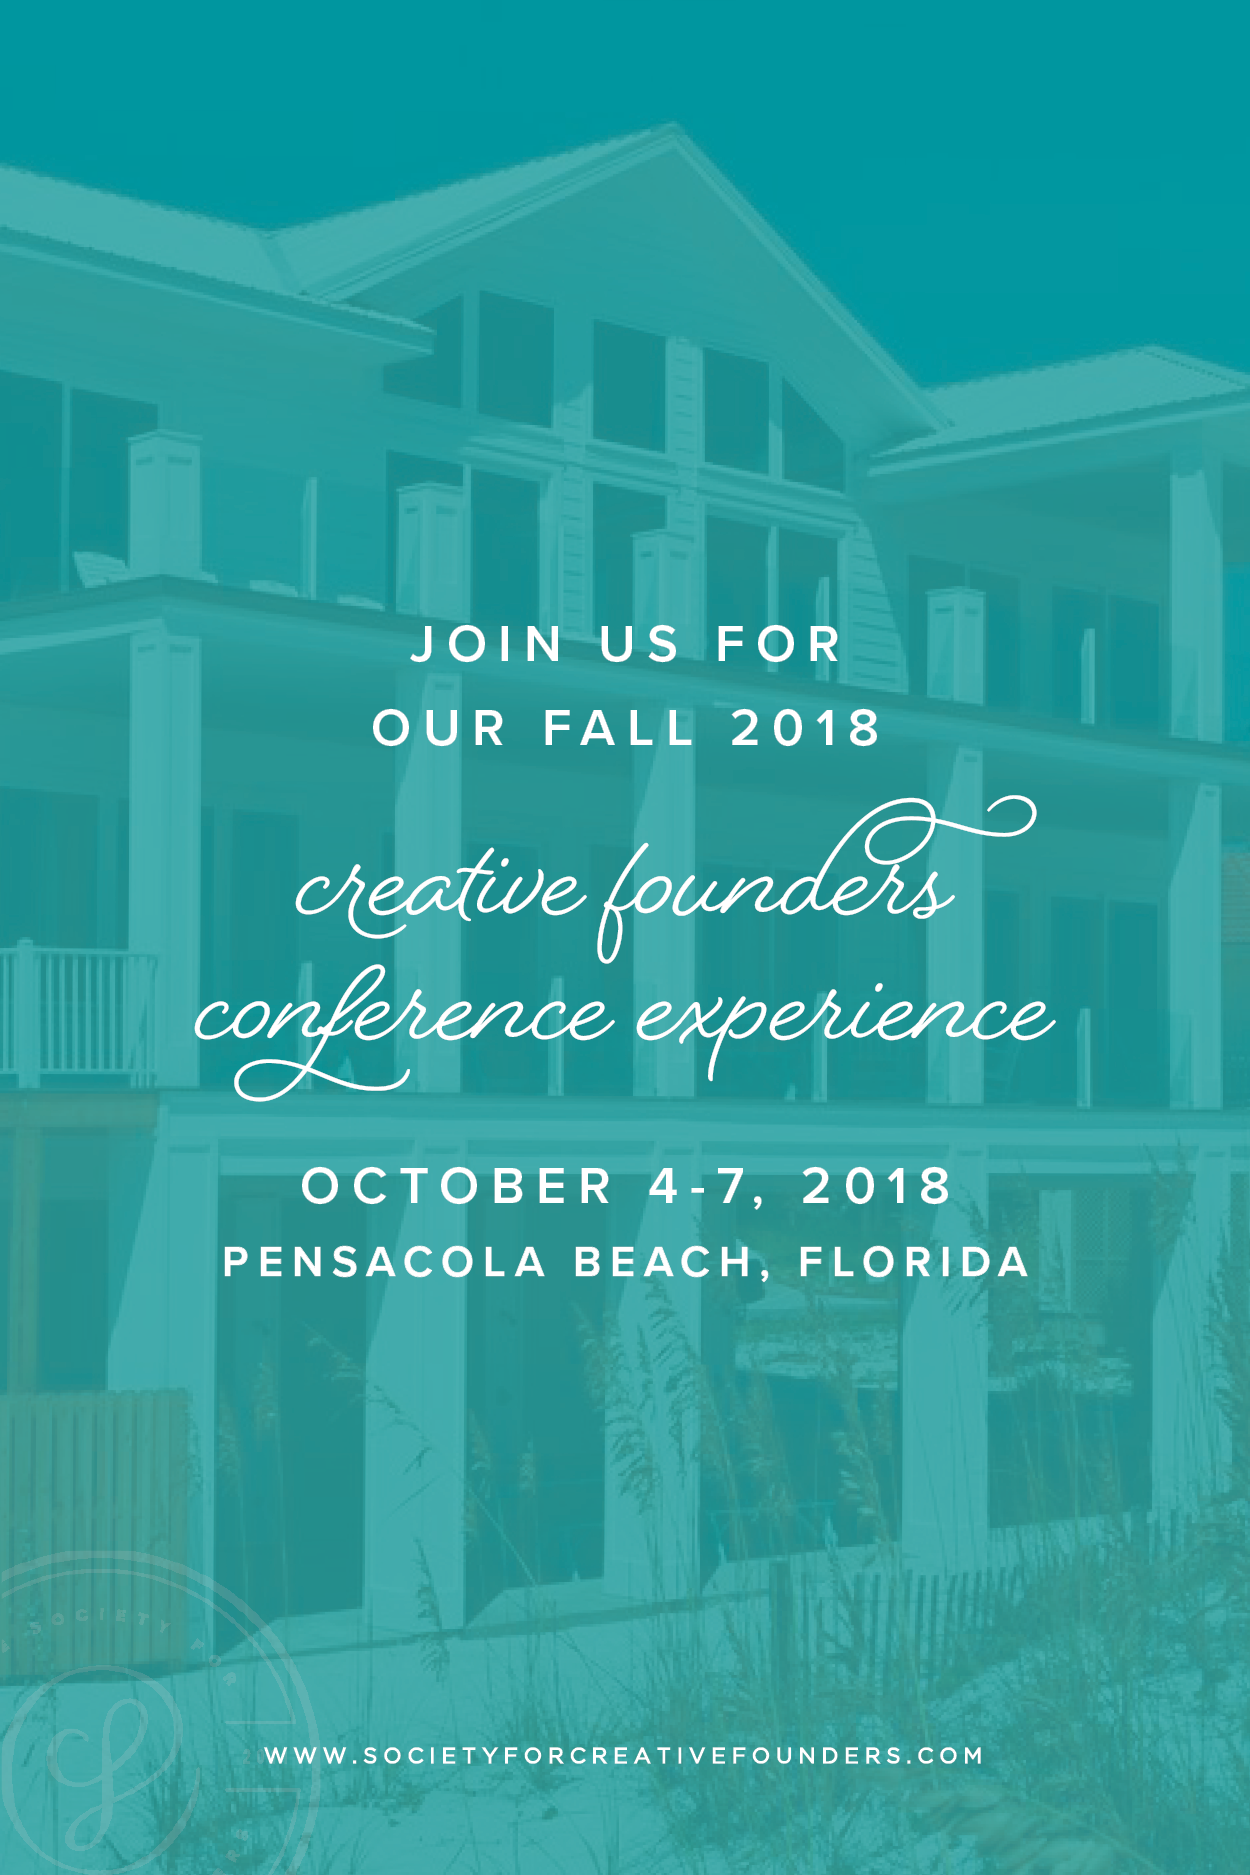 Creative Founders 2018 Conference - April 15-18, 2018